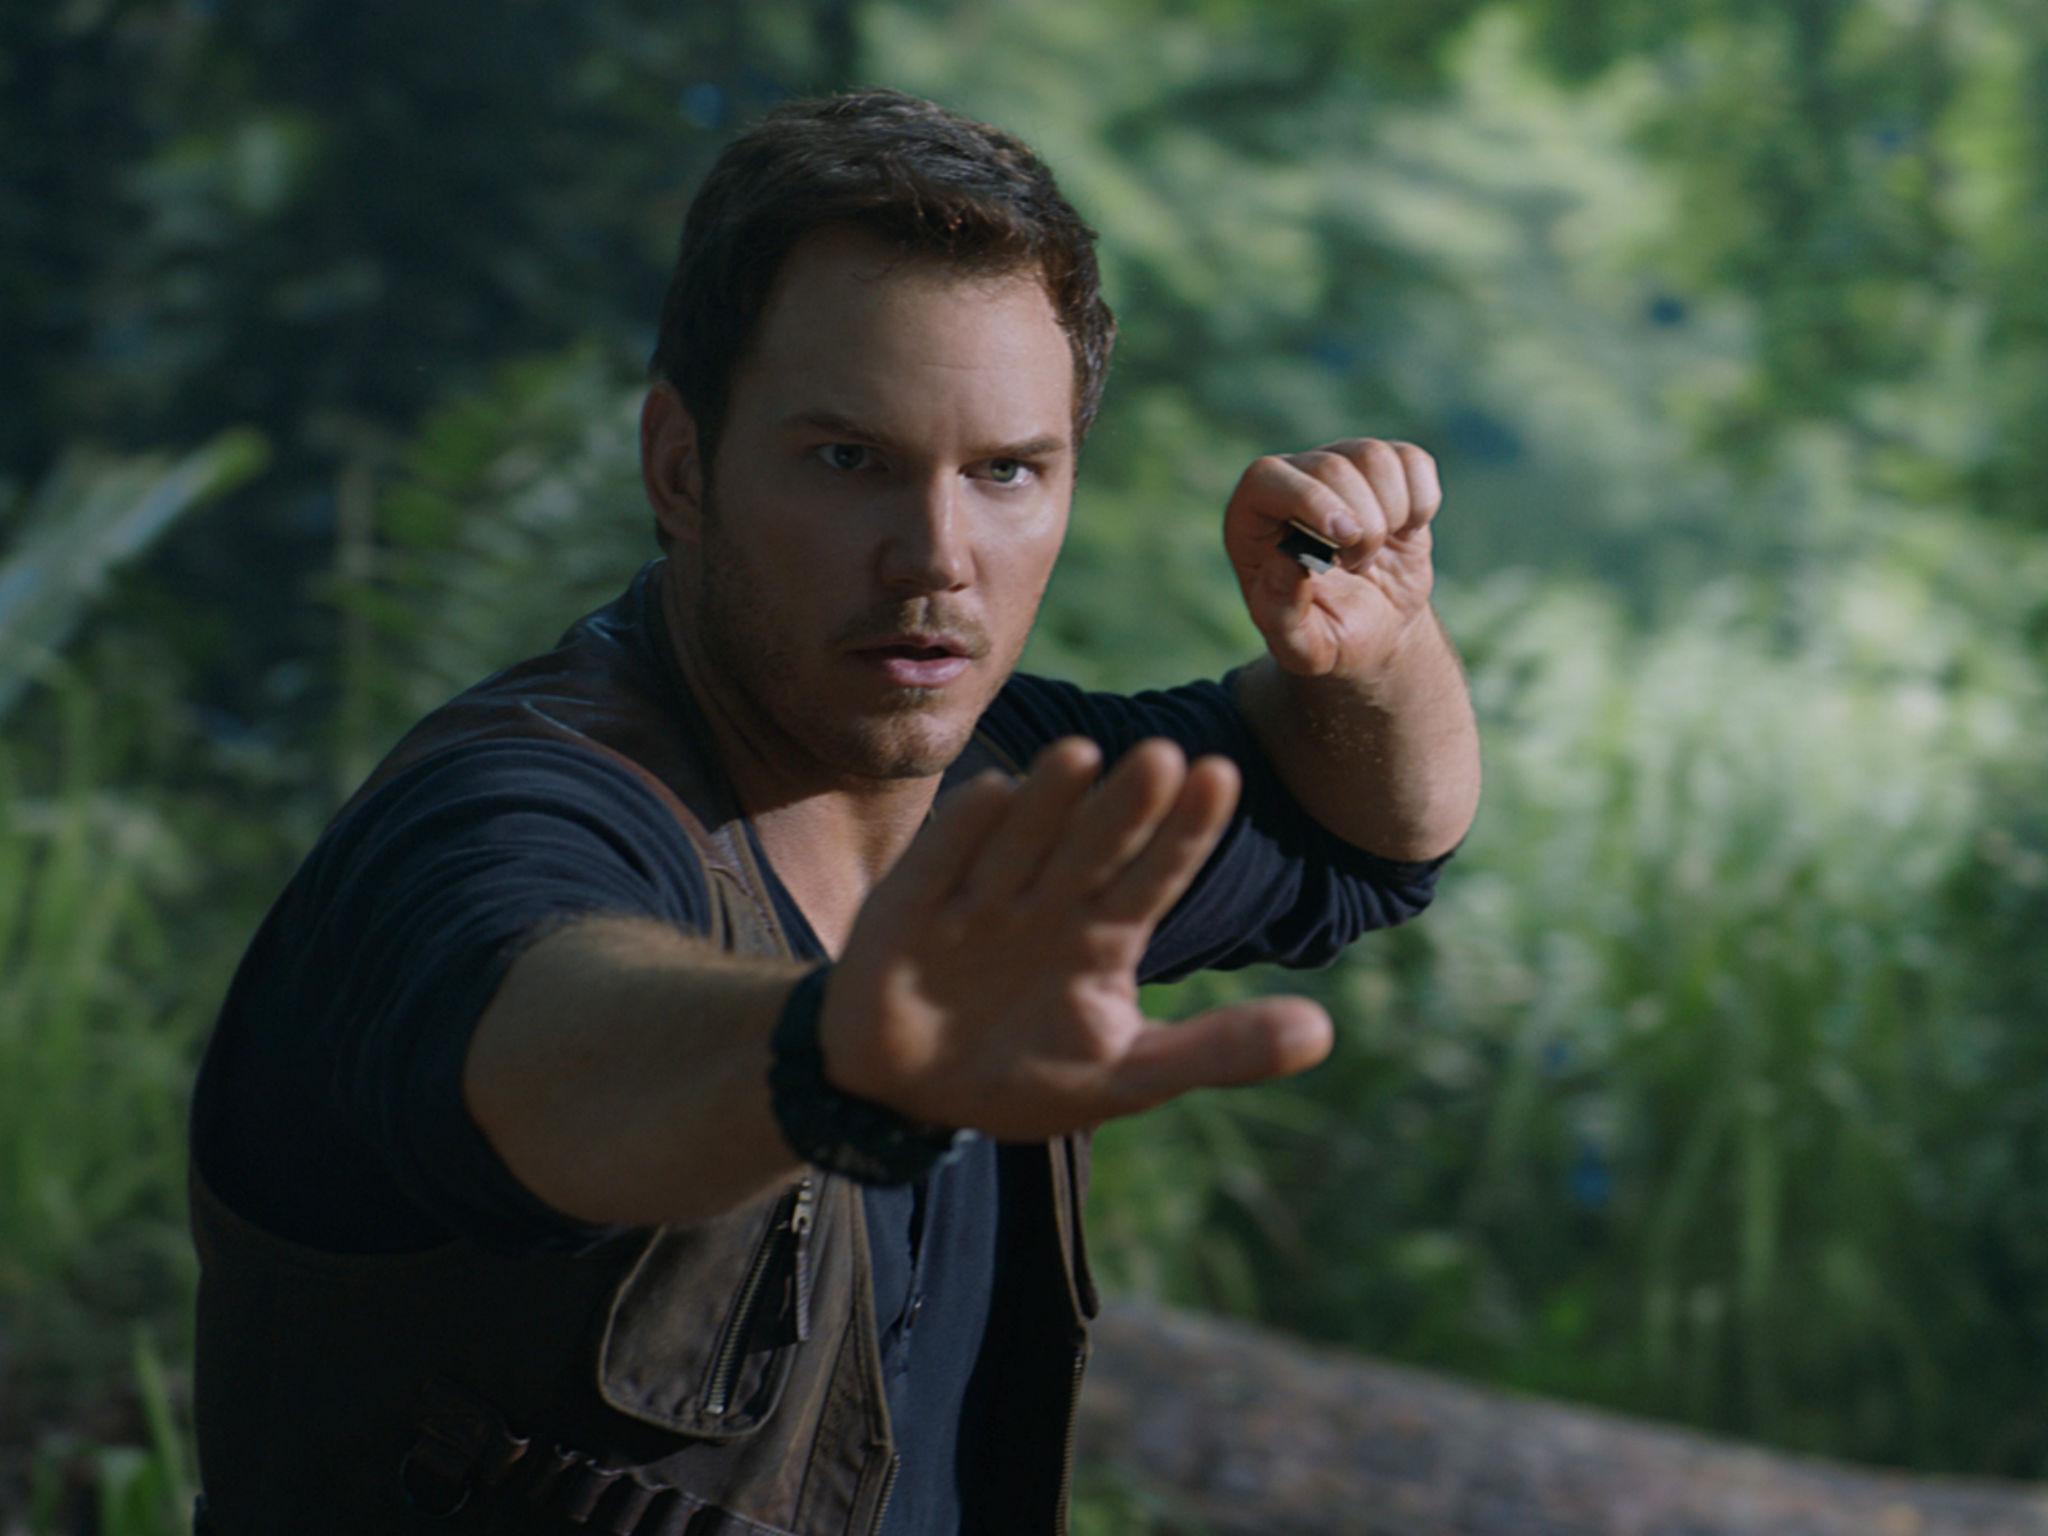 Jurassic World: Fallen Kingdom review round-up: The verdict is in for JA  Bayona's dinosaur sequel   The Independent   The Independent